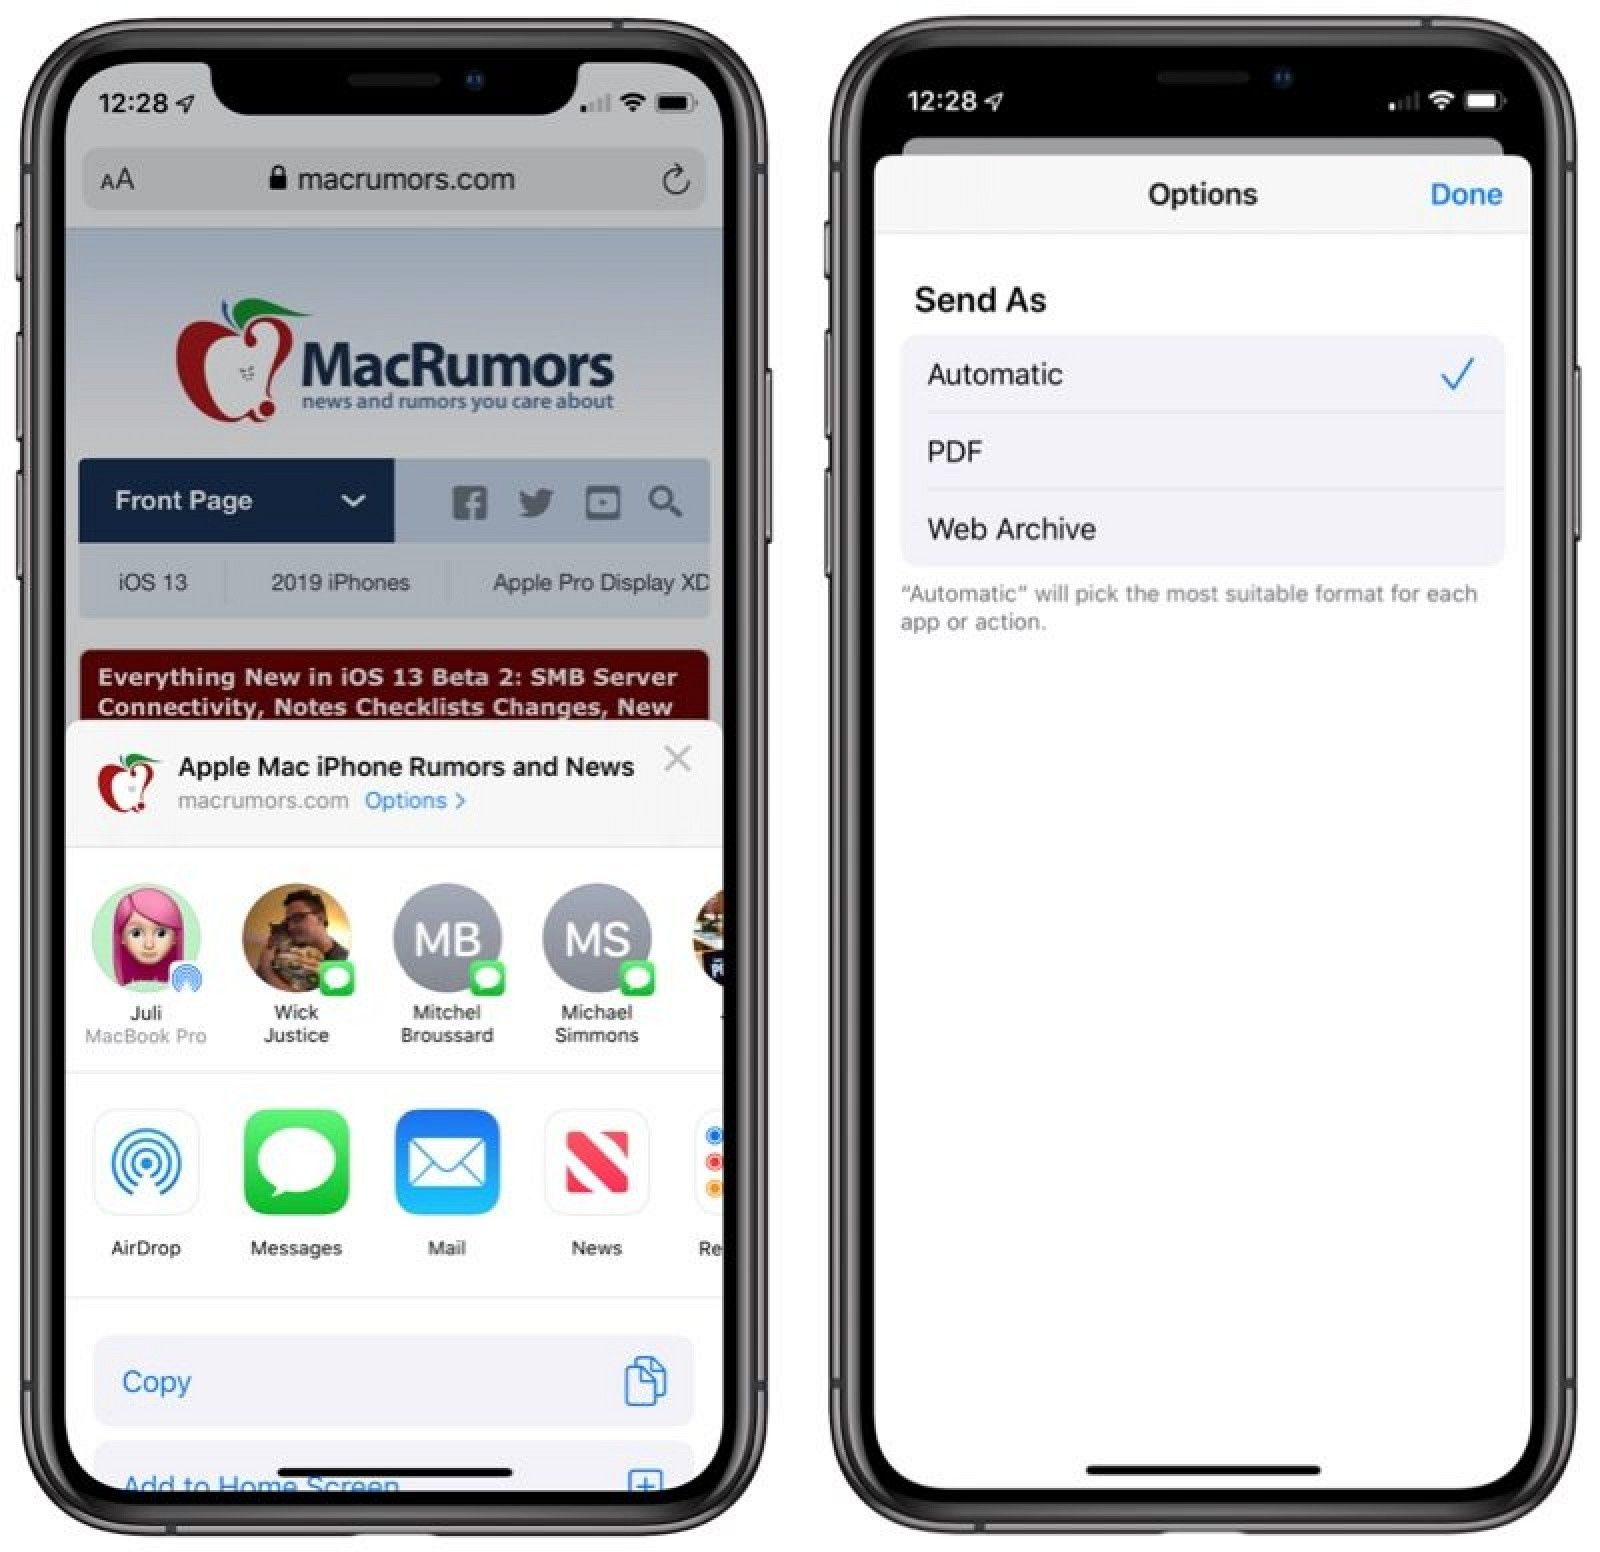 iOS 13 Complete Guide and Feature List (With images